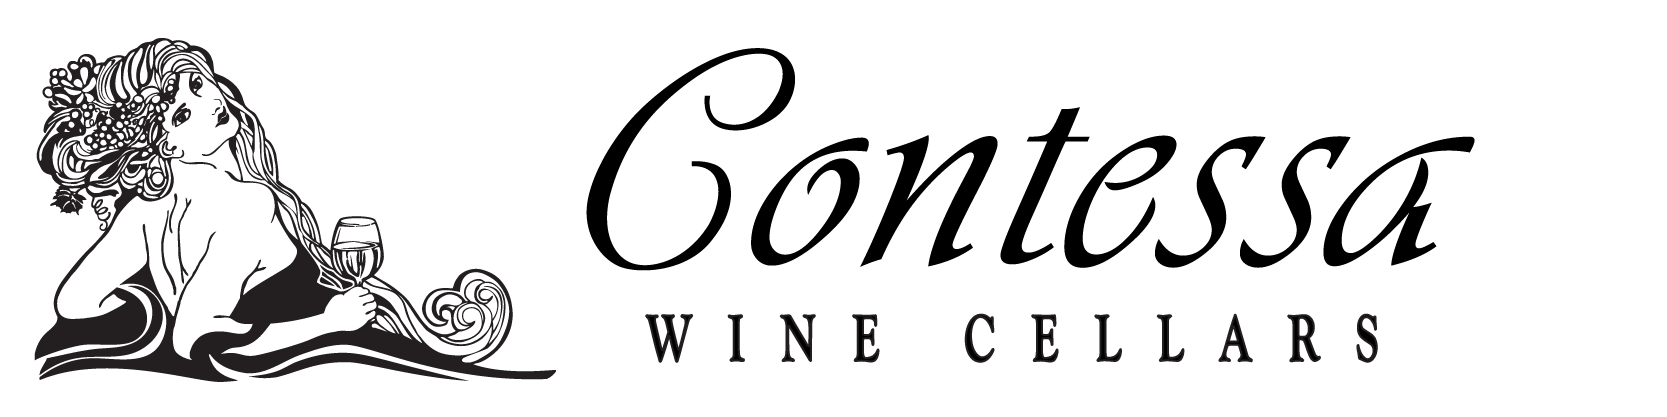 contessa wine cellars.png